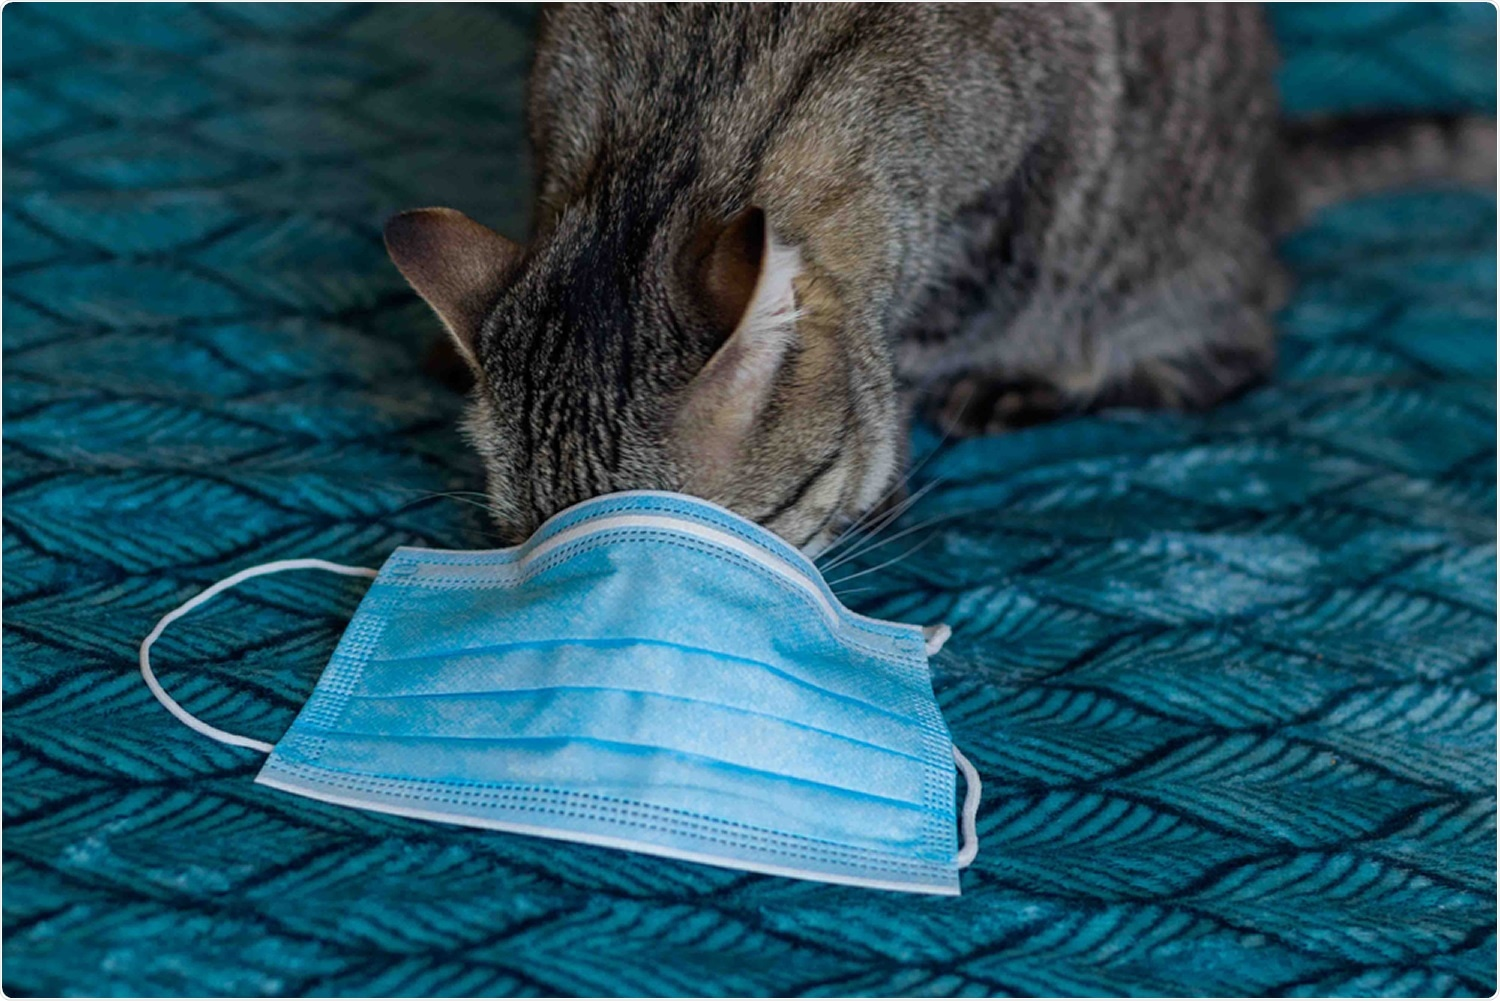 Study: The SARS-CoV-2 reproduction number R0 in cats. Image Credit: anyaPhOtOgraf / Shutterstock